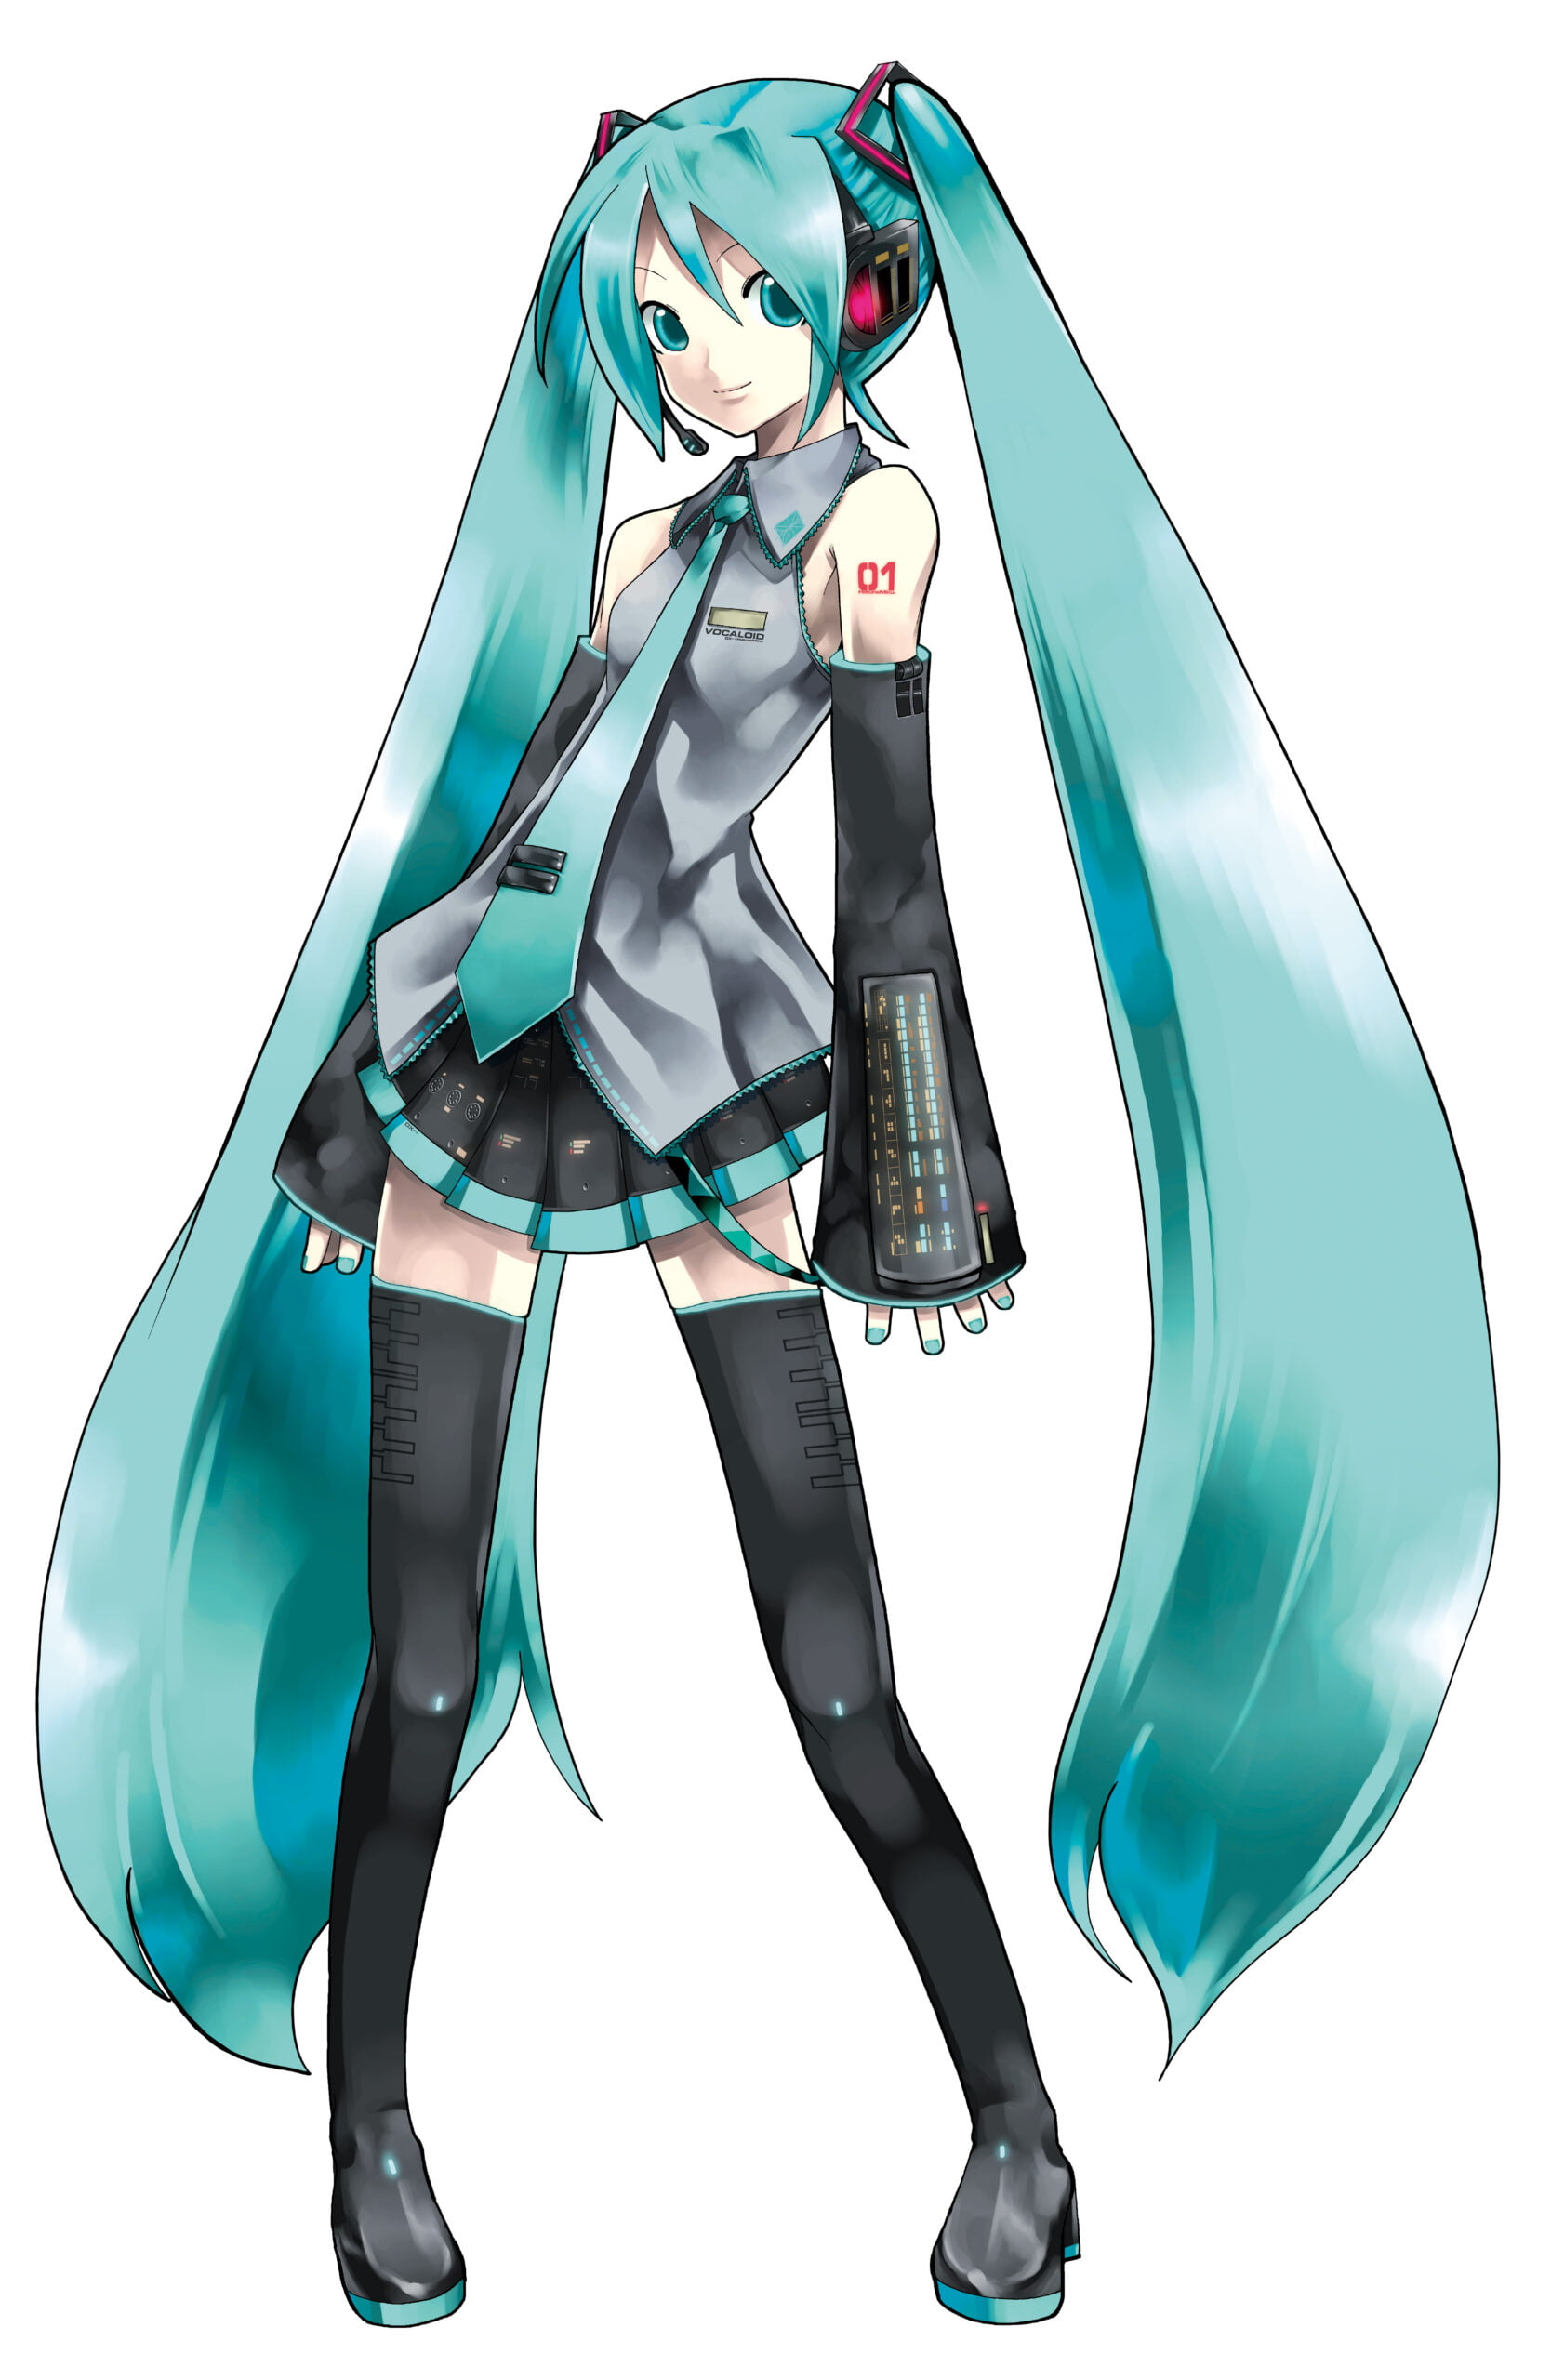 Graphic India Announces New Animated TV Series With Hatsune Miku – the Virtual Global Popstar